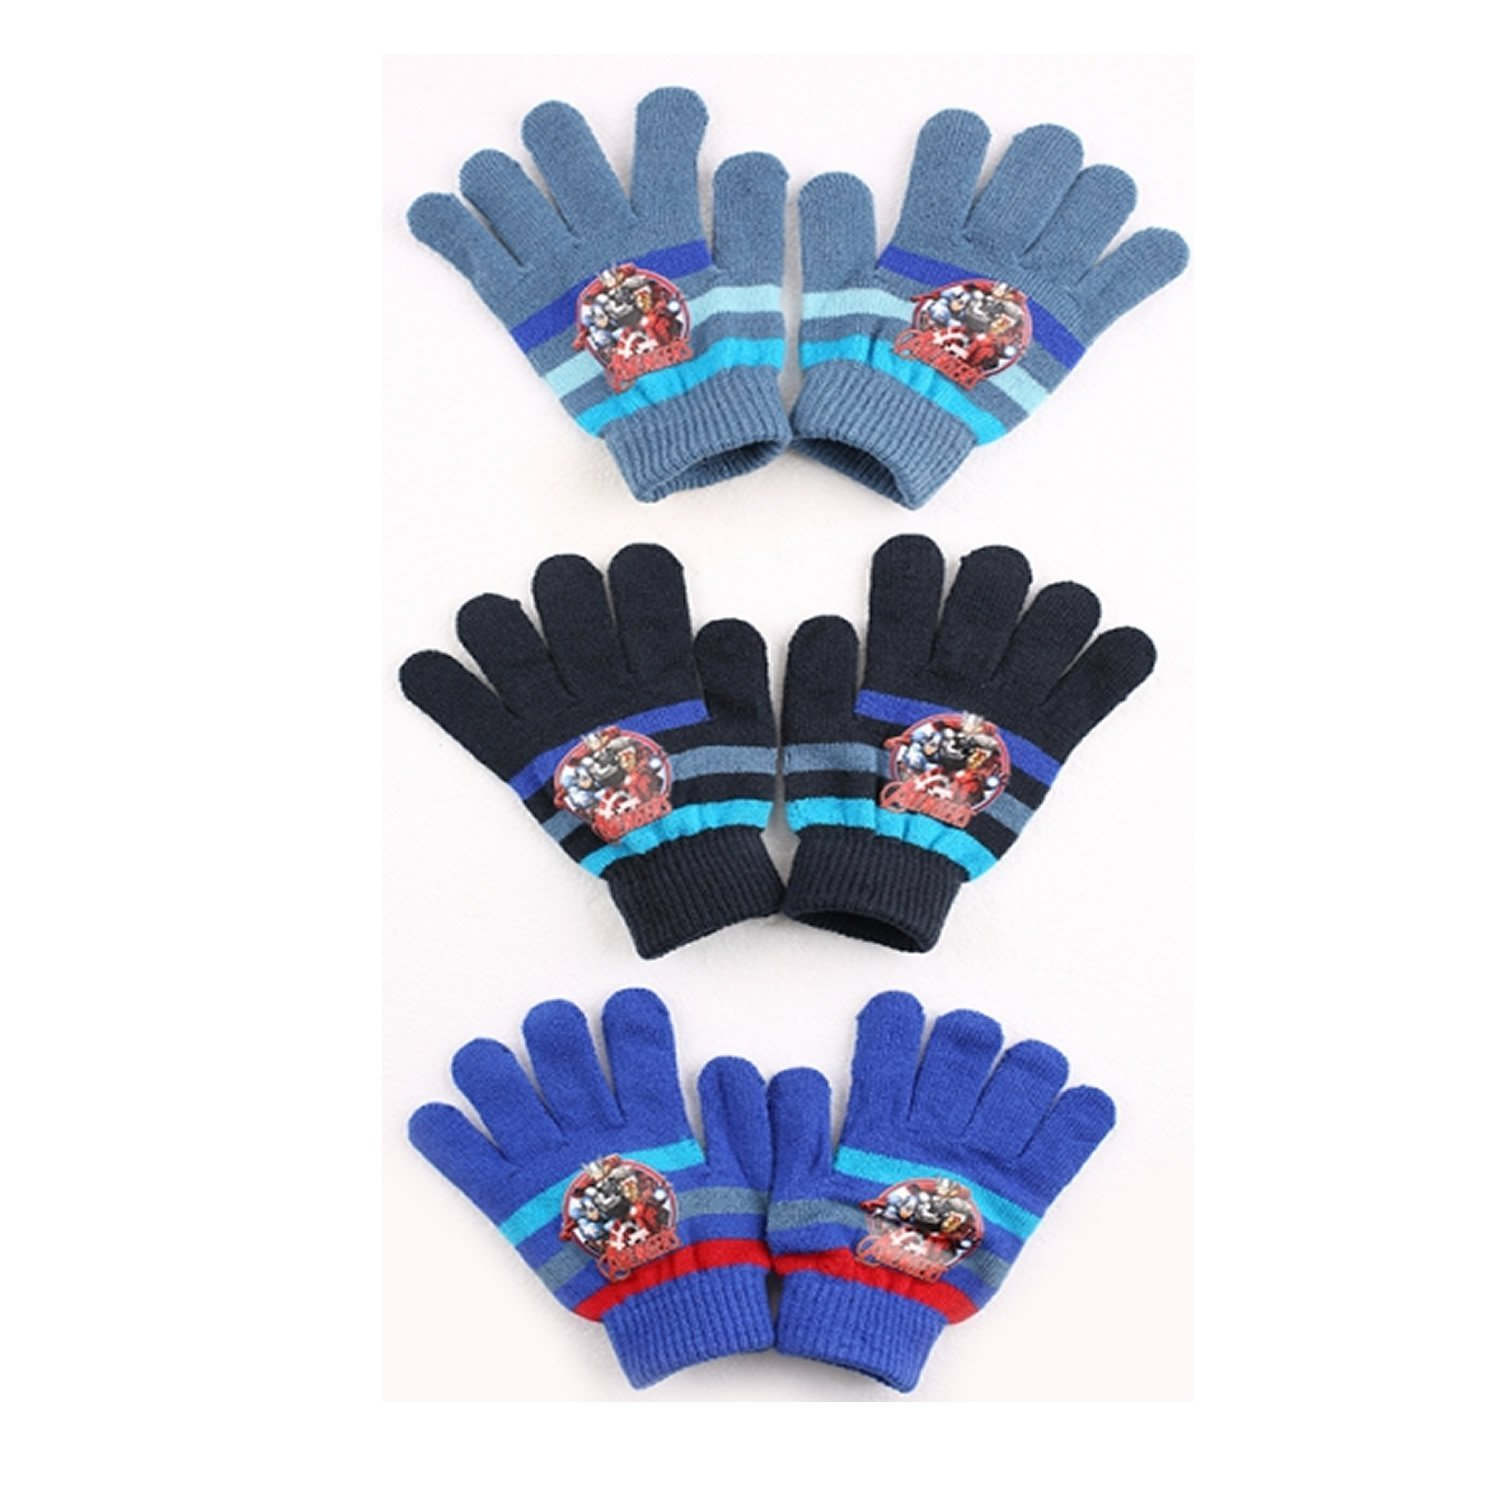 Character Marvel 'Avengers' Knitted 3 Assorted Gloves One Size Kids Accessories